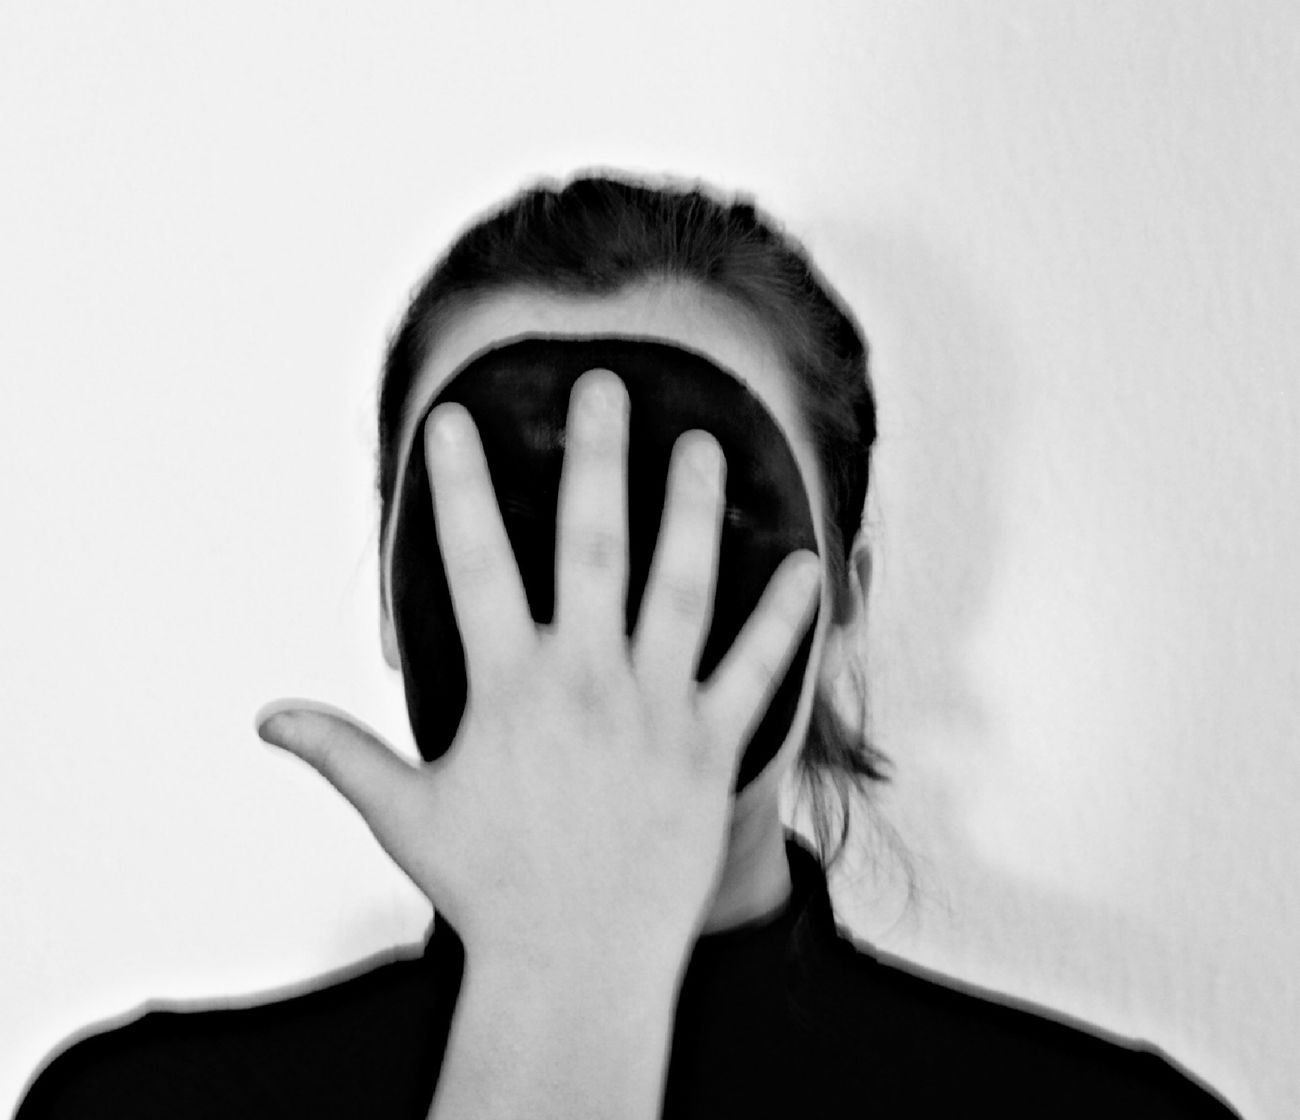 Obscured Face White Background One Person Hands Covering Eyes One Woman Only Covering Women Face Tensed Young Adult Human Hand Day